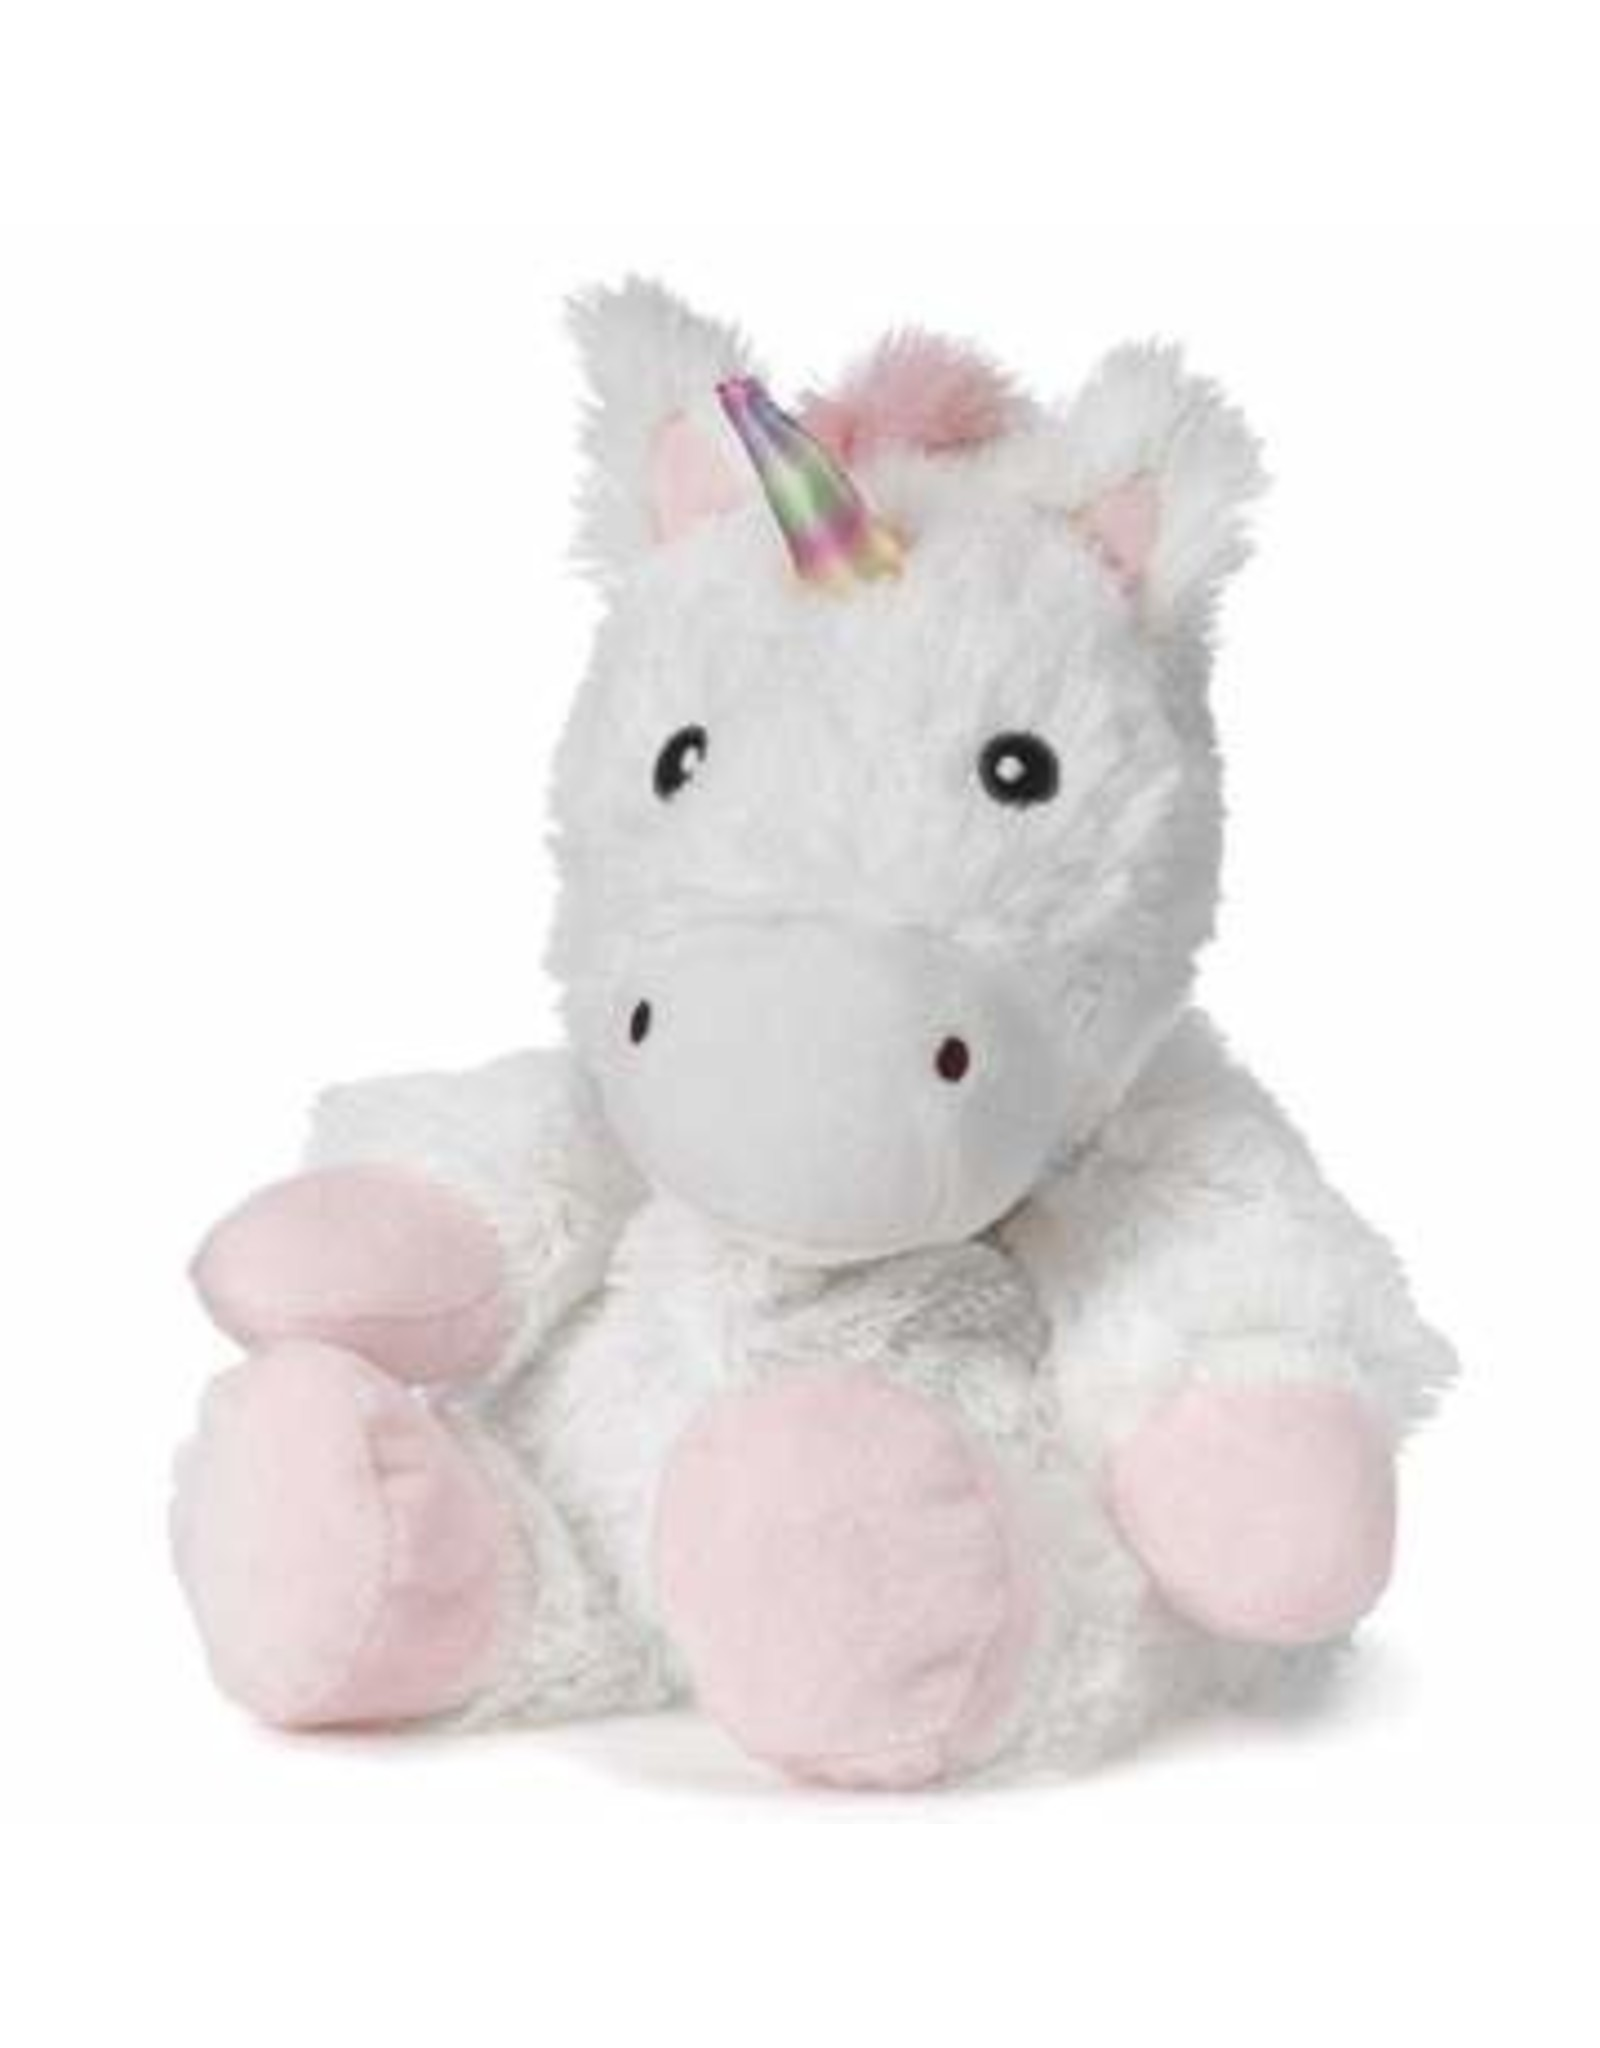 Intelex USA / Warmies WHITE UNICORN WARMIE